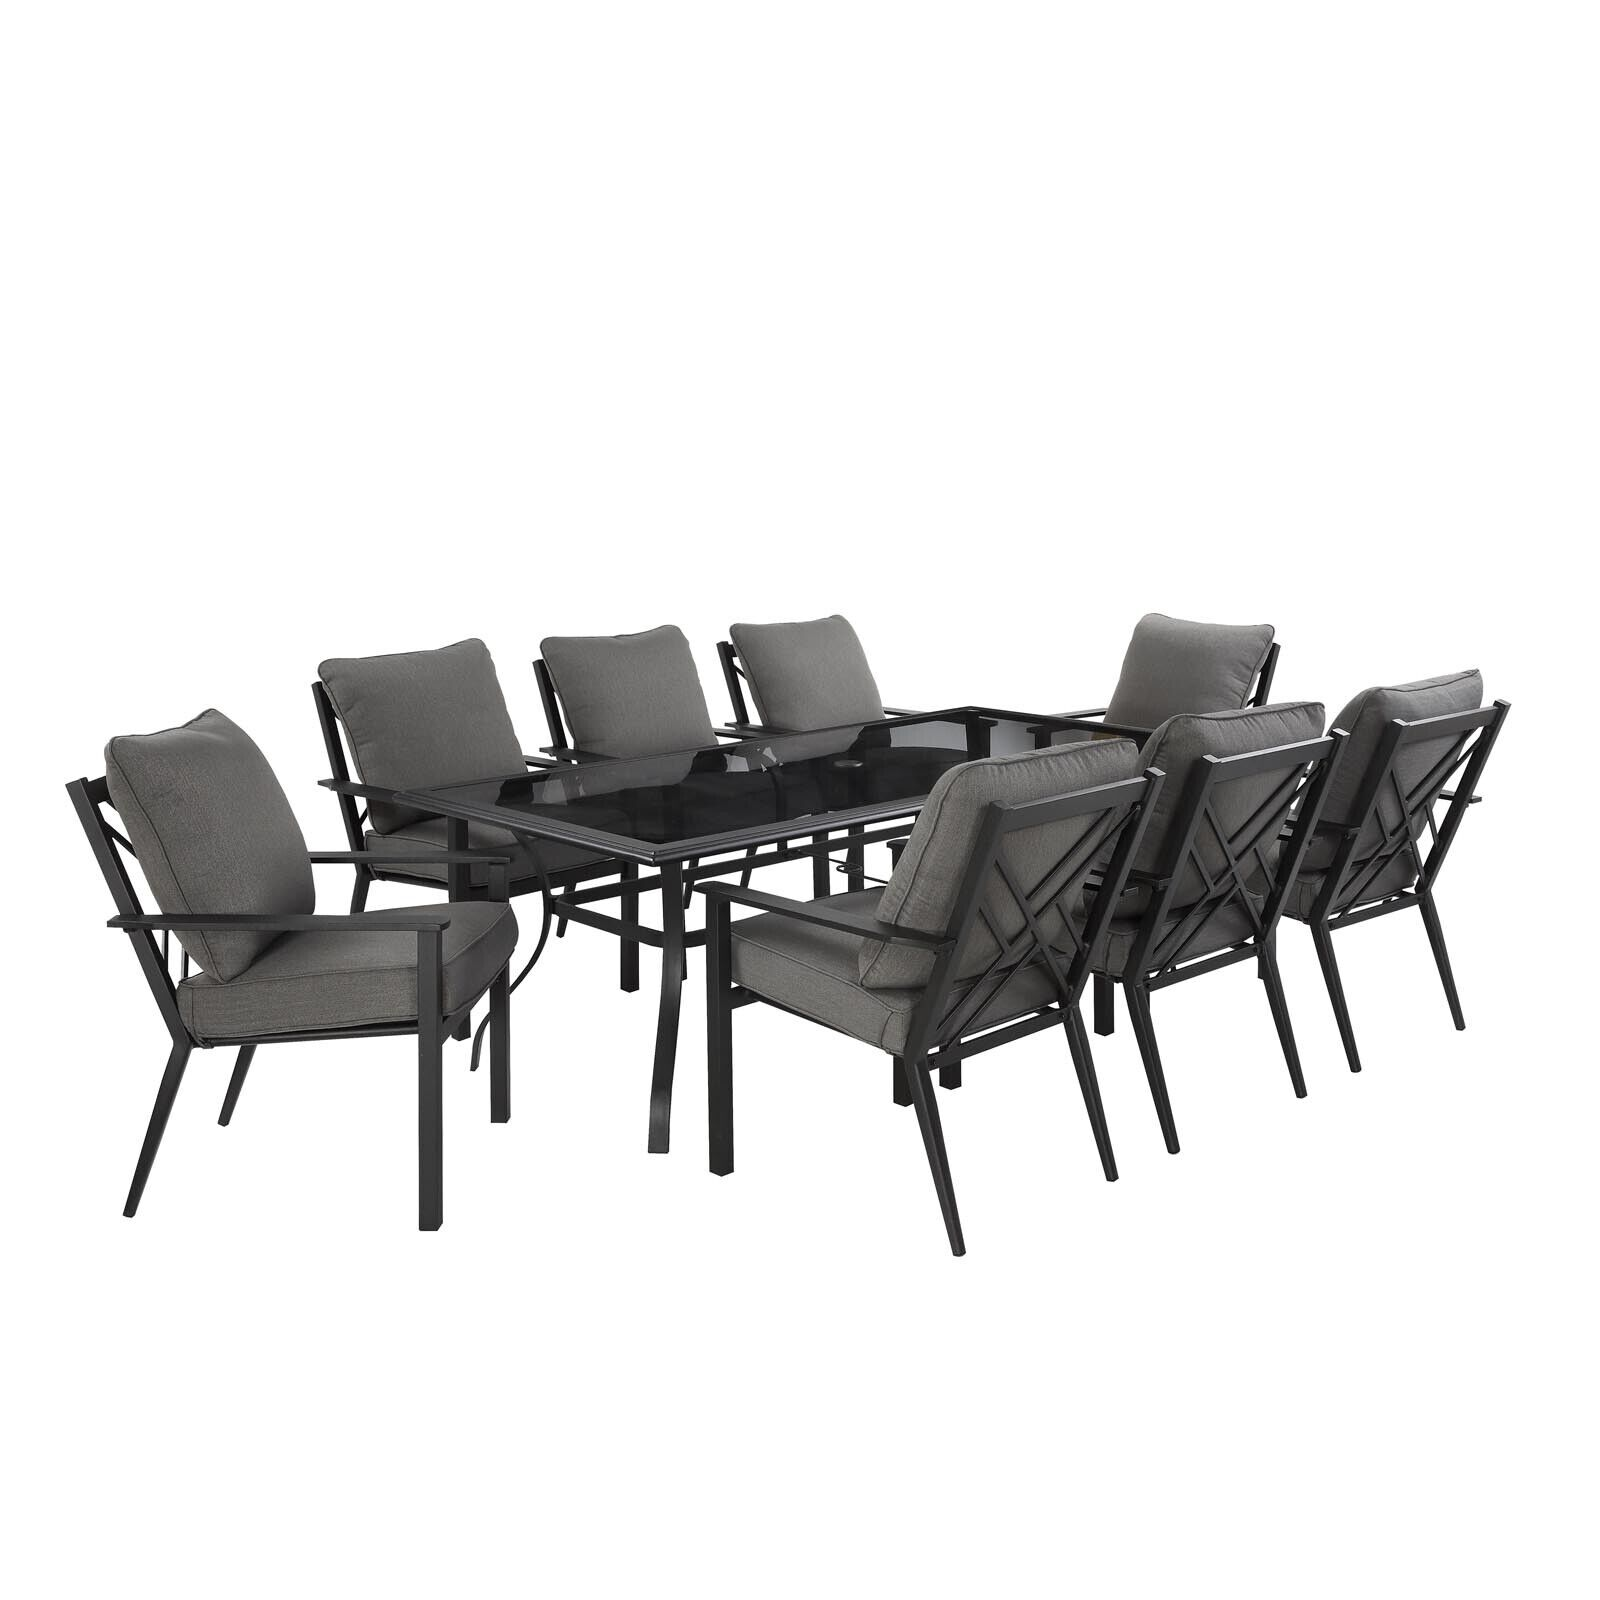 Image of: Mimosa Weston 9 Piece Dining Setting At Bunnings Warehouse For Sale Online Ebay